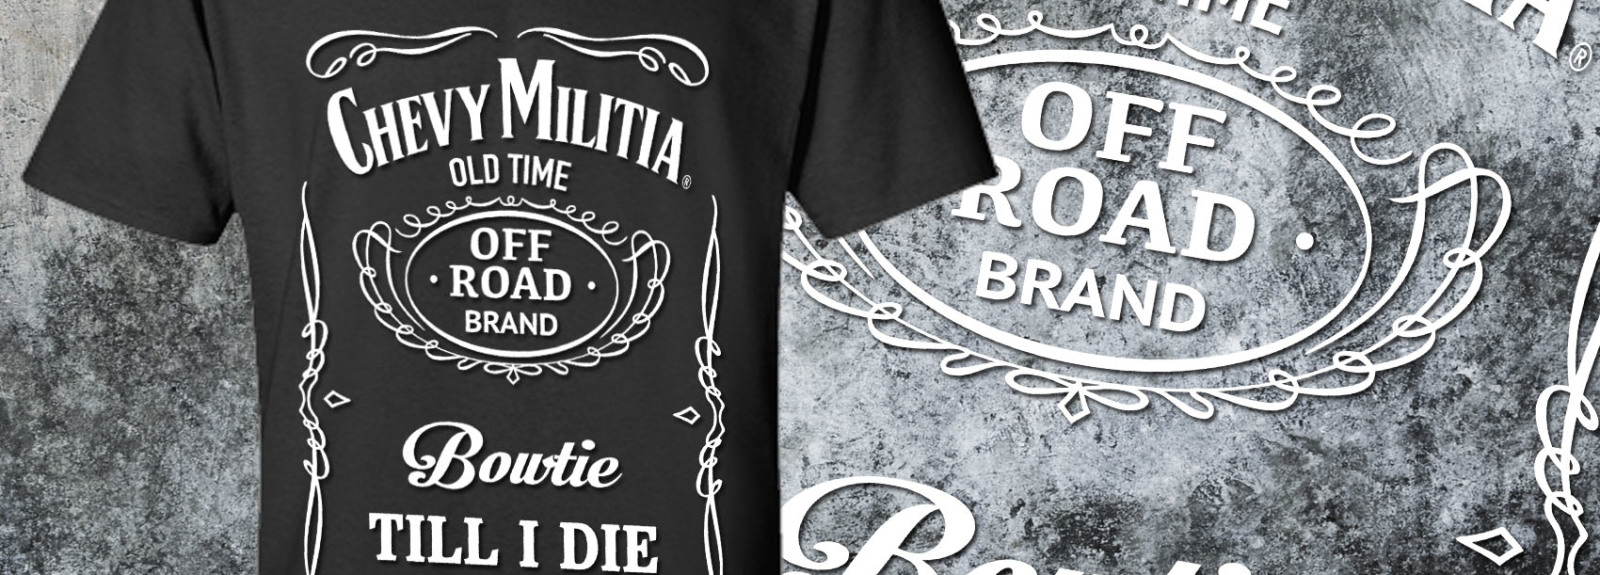 Whiskey T-shirt Chevy Militia Apparel